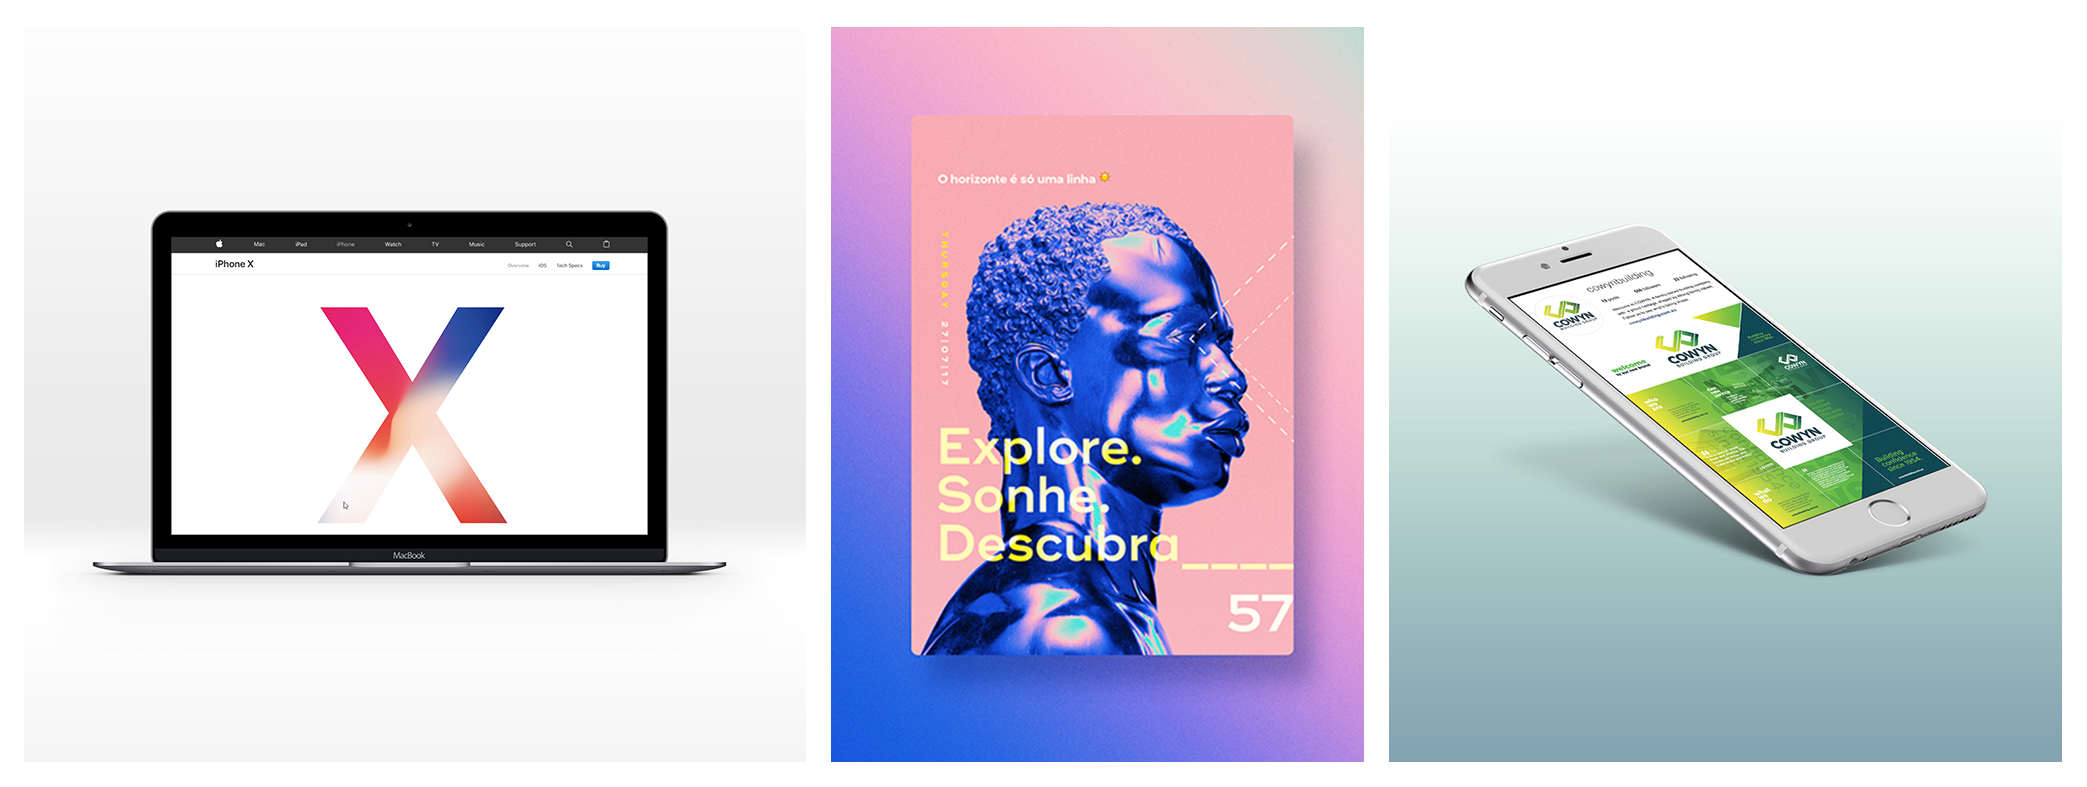 Image credit:  iPhone X landing page  /  Bruno Pego poster  /  Cowyn Building Group branding